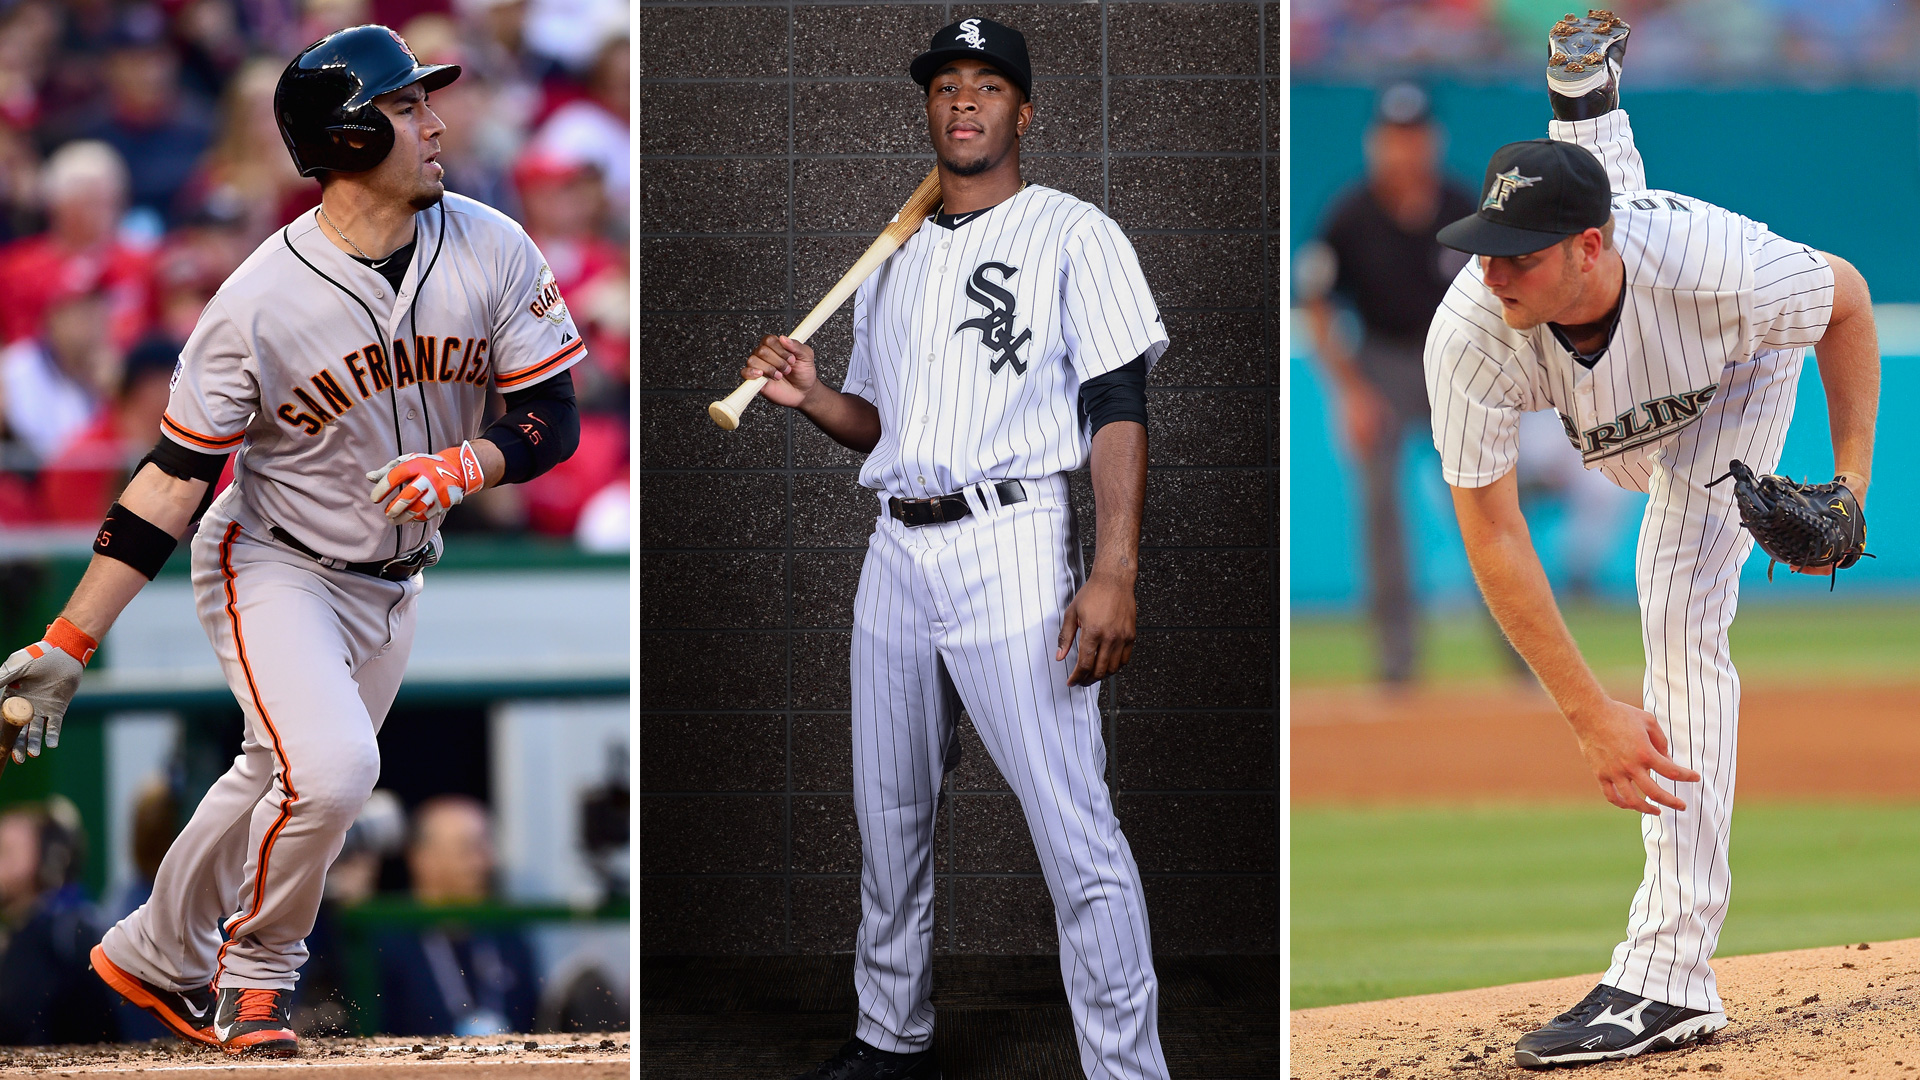 Split-travis-ishikawa-tim-anderson-chris-volstad-042616-getty-ftrjpg_9ybbkt9mf8njzzrjasca3c86